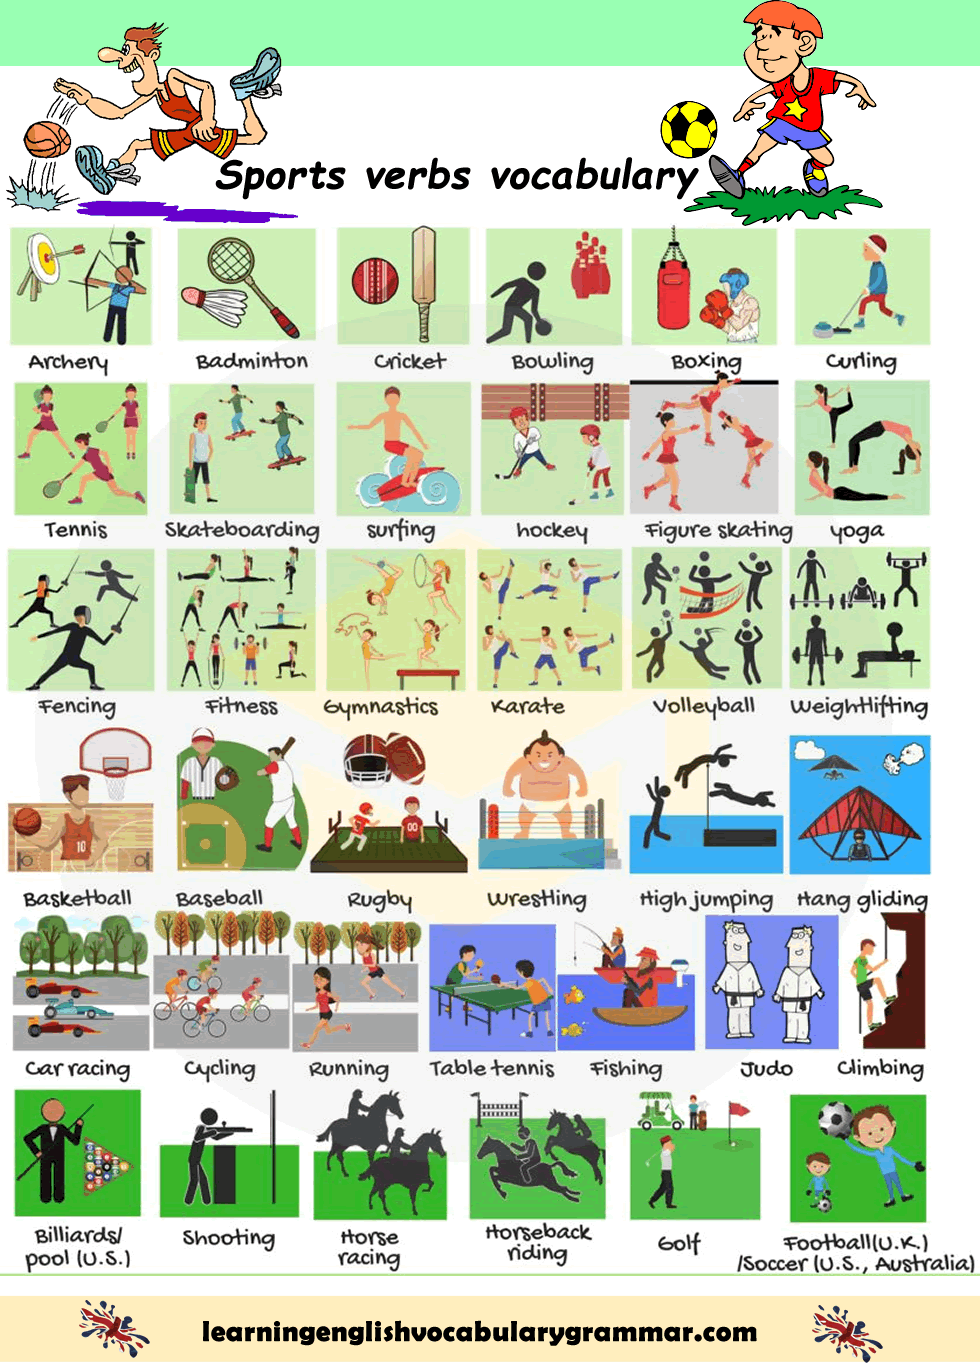 Sports Vocabulary List With Pictures And English Words Pdf Vocabulario En Ingles Inglés Para Niños Idioma Ingles